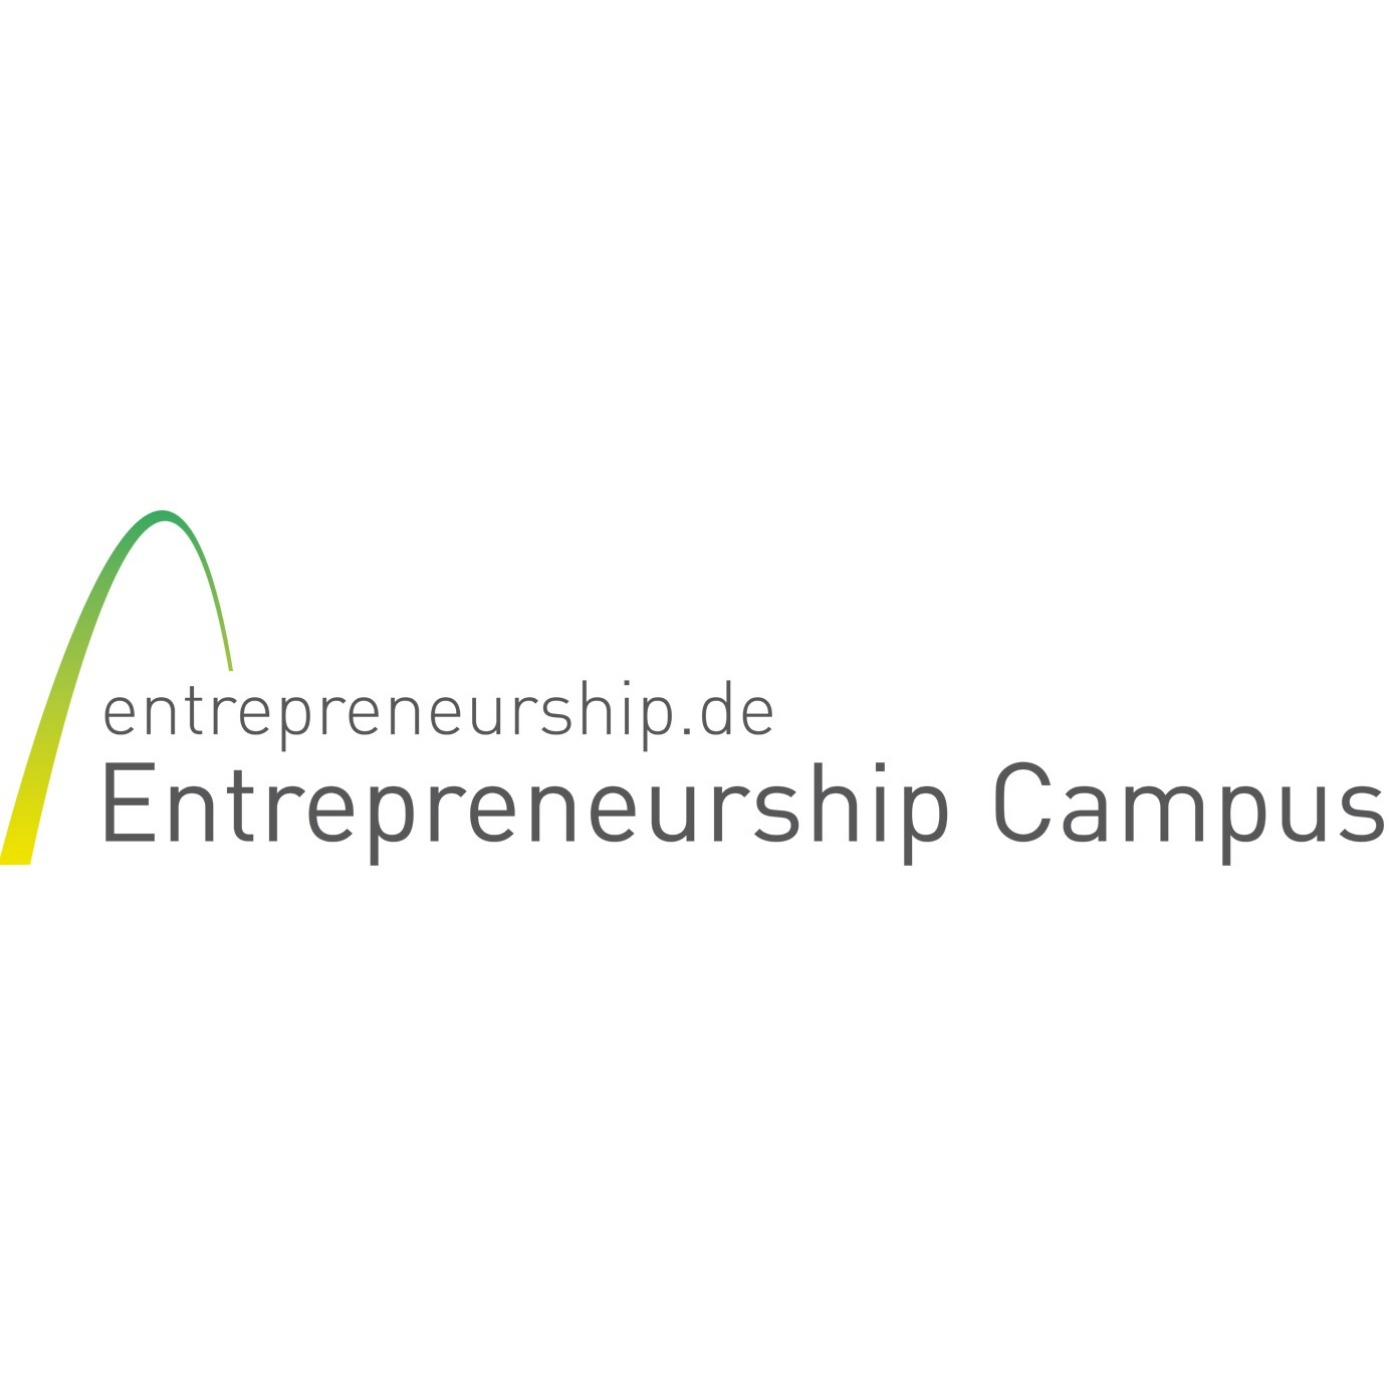 High-Tech und High-Touch – Chancen für gute Entrepreneurial Designs